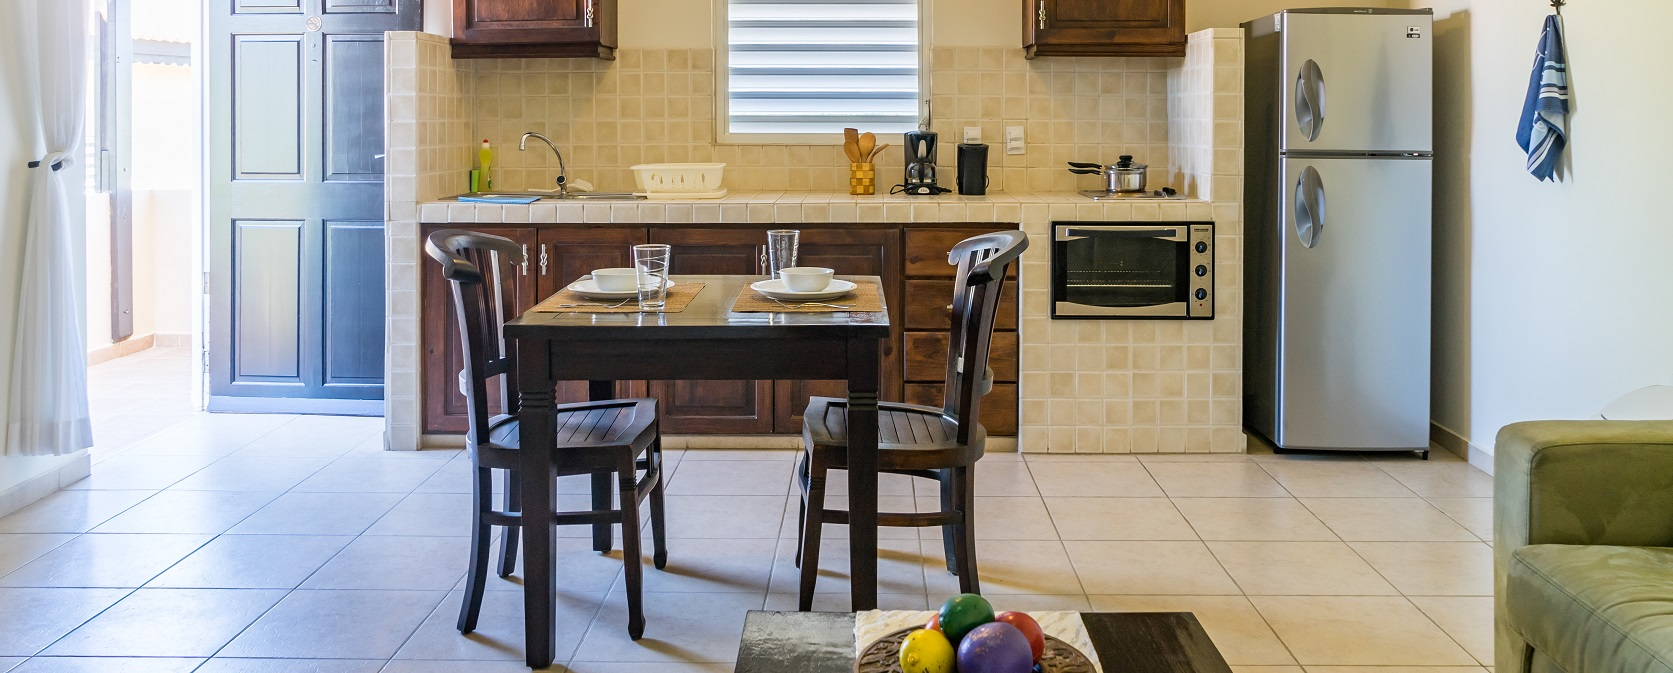 each apartment features its own kitchenette